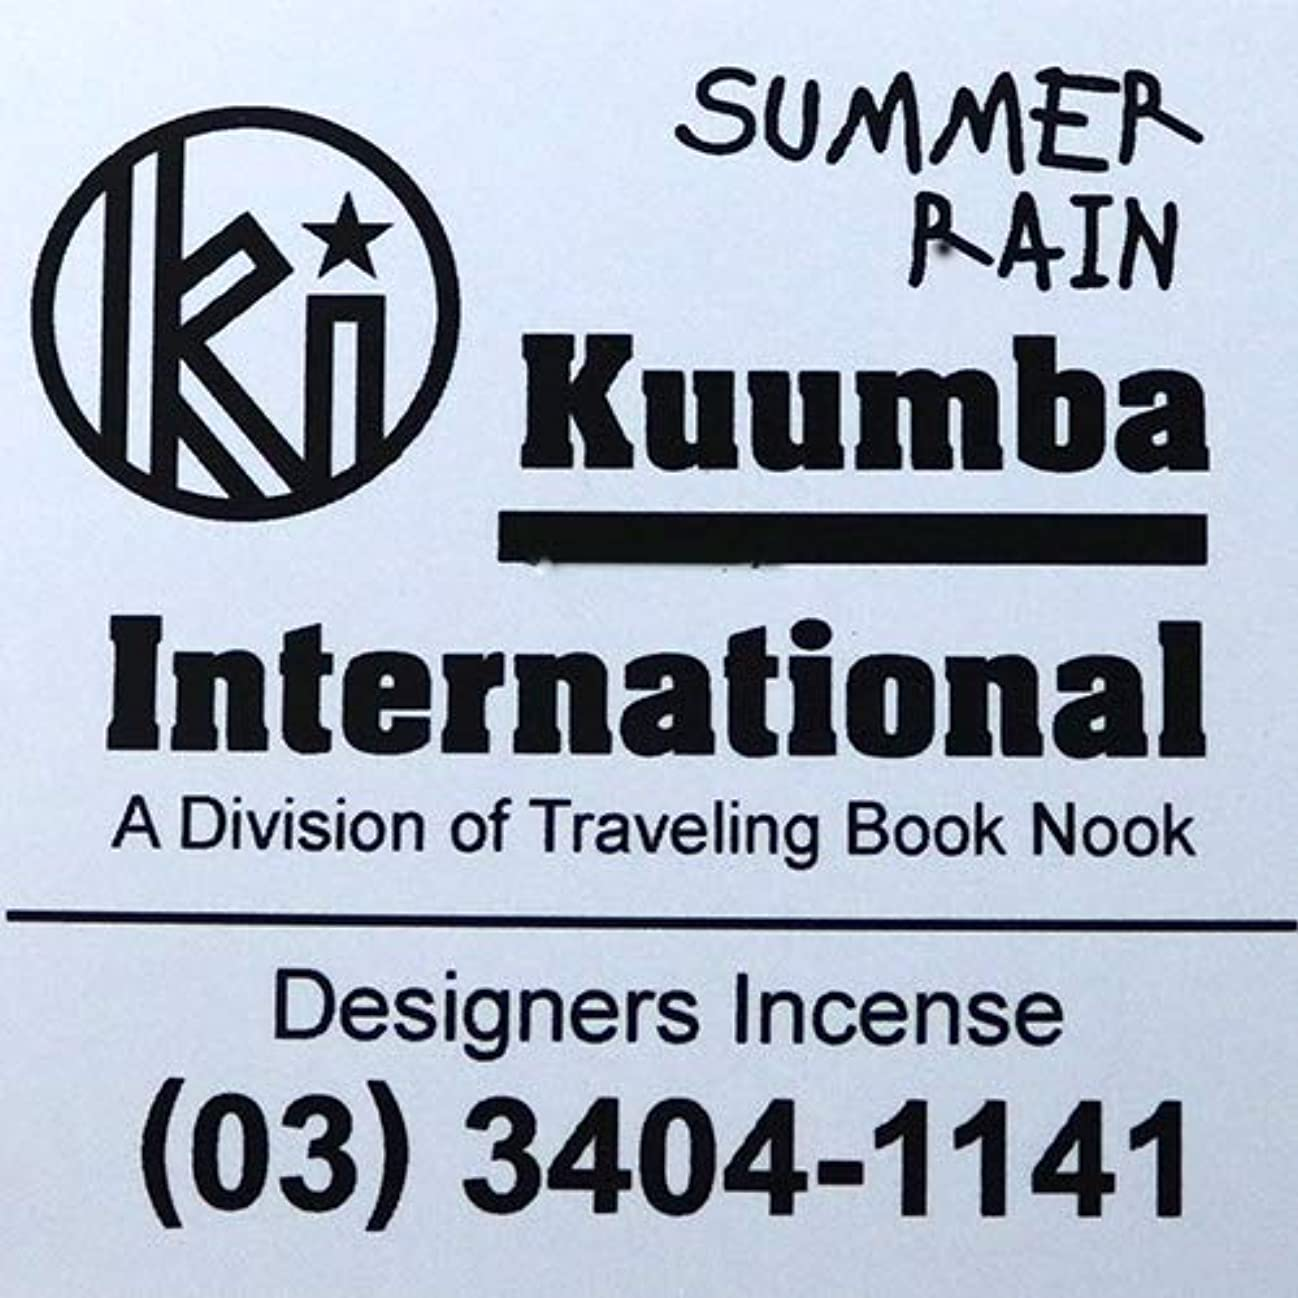 静める主権者寛大な(クンバ) KUUMBA『incense』(SUMMER RAIN) (SUMMER RAIN, Regular size)